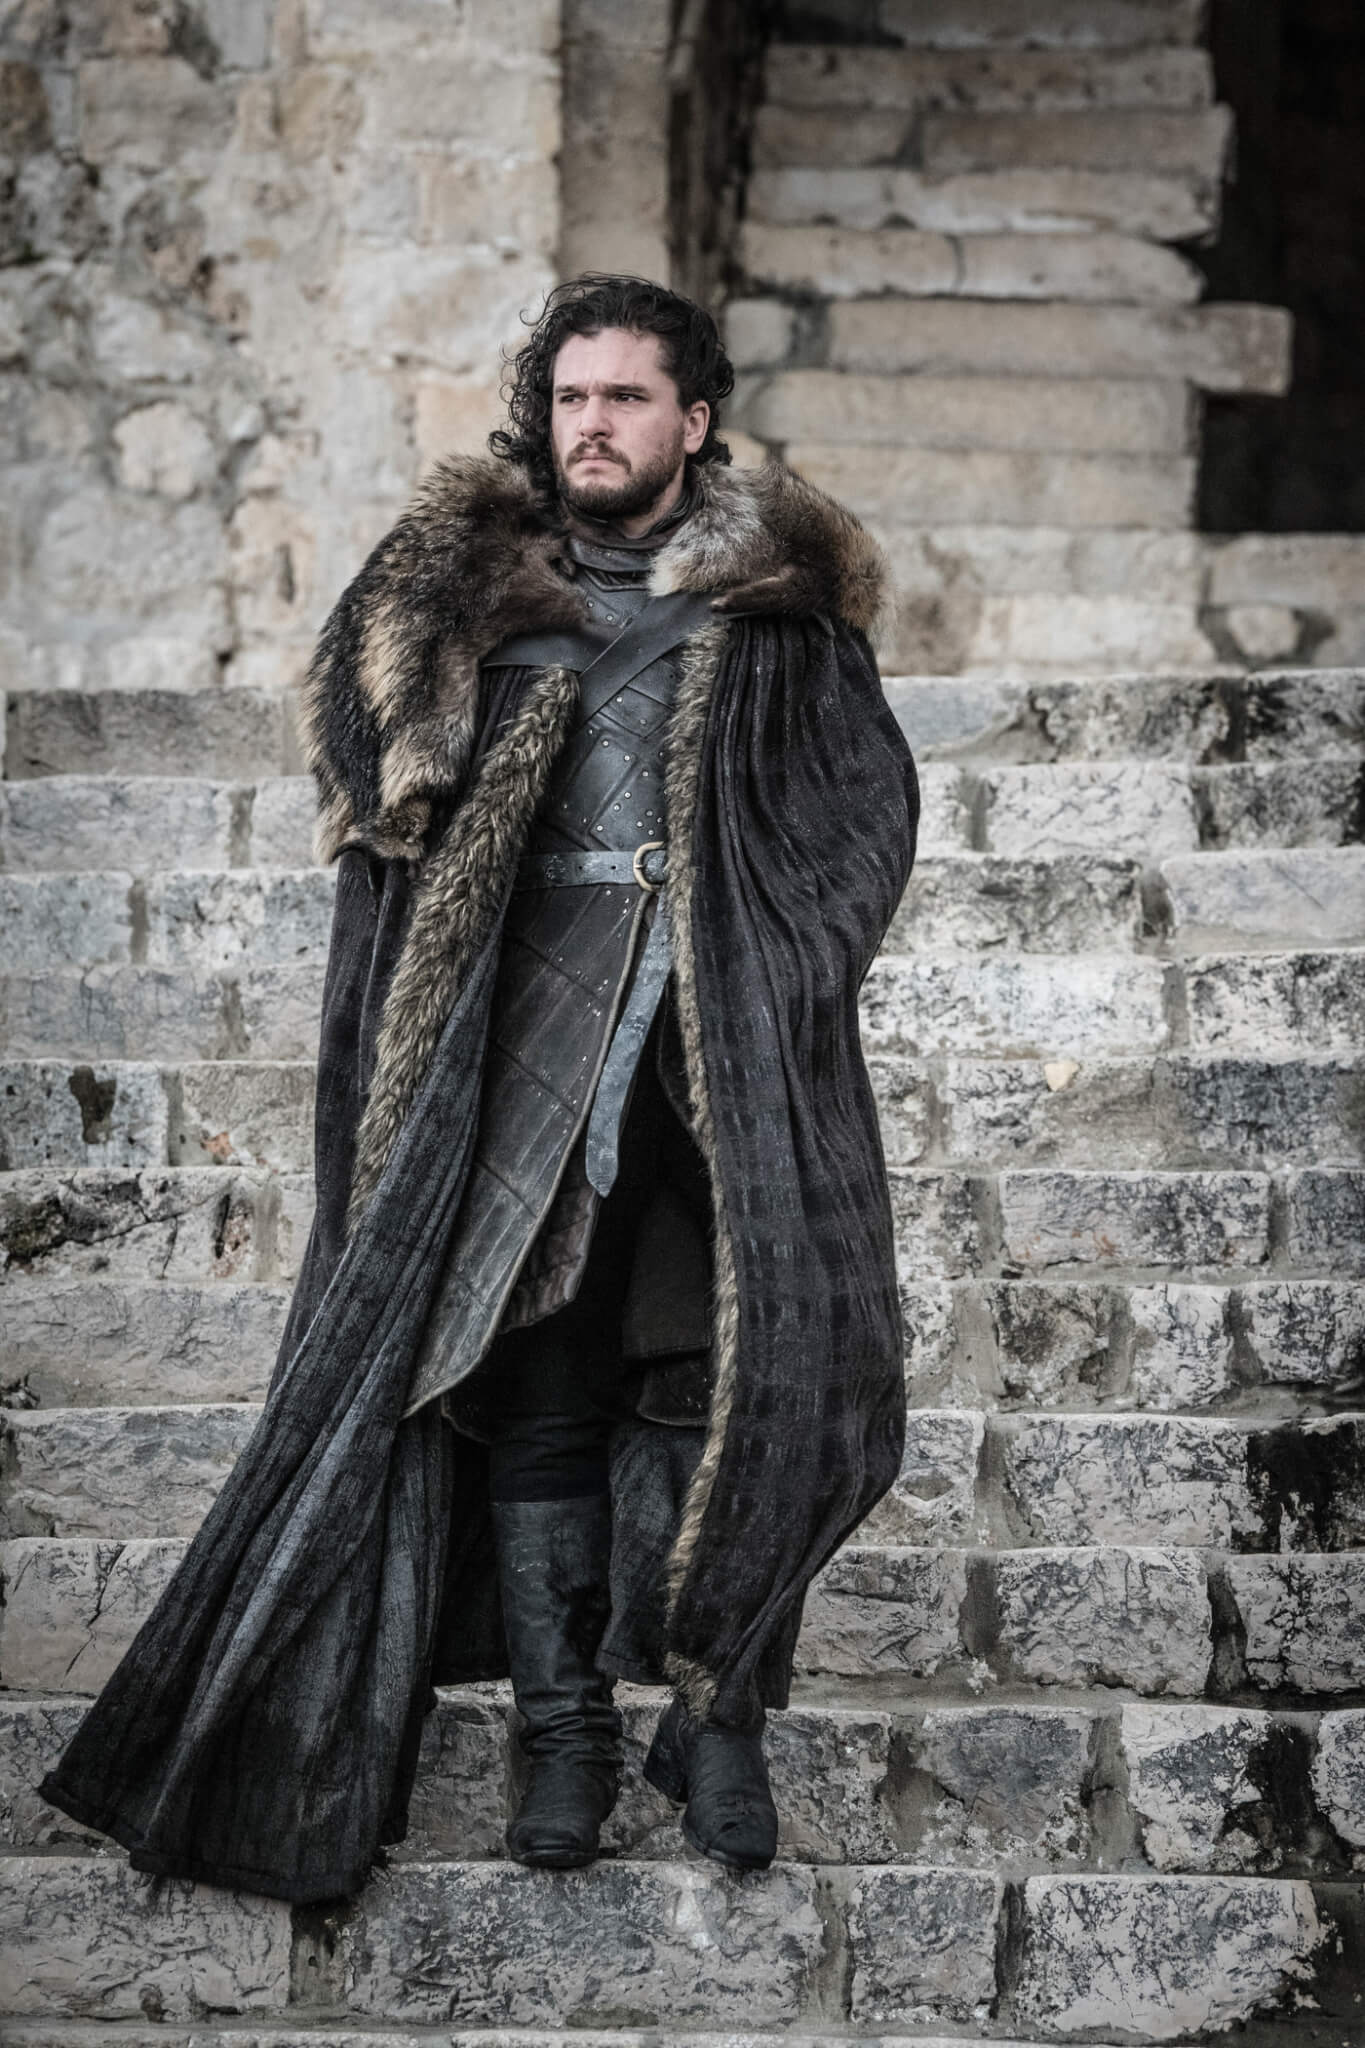 Jon Snow no último episódio de Game of Thrones.